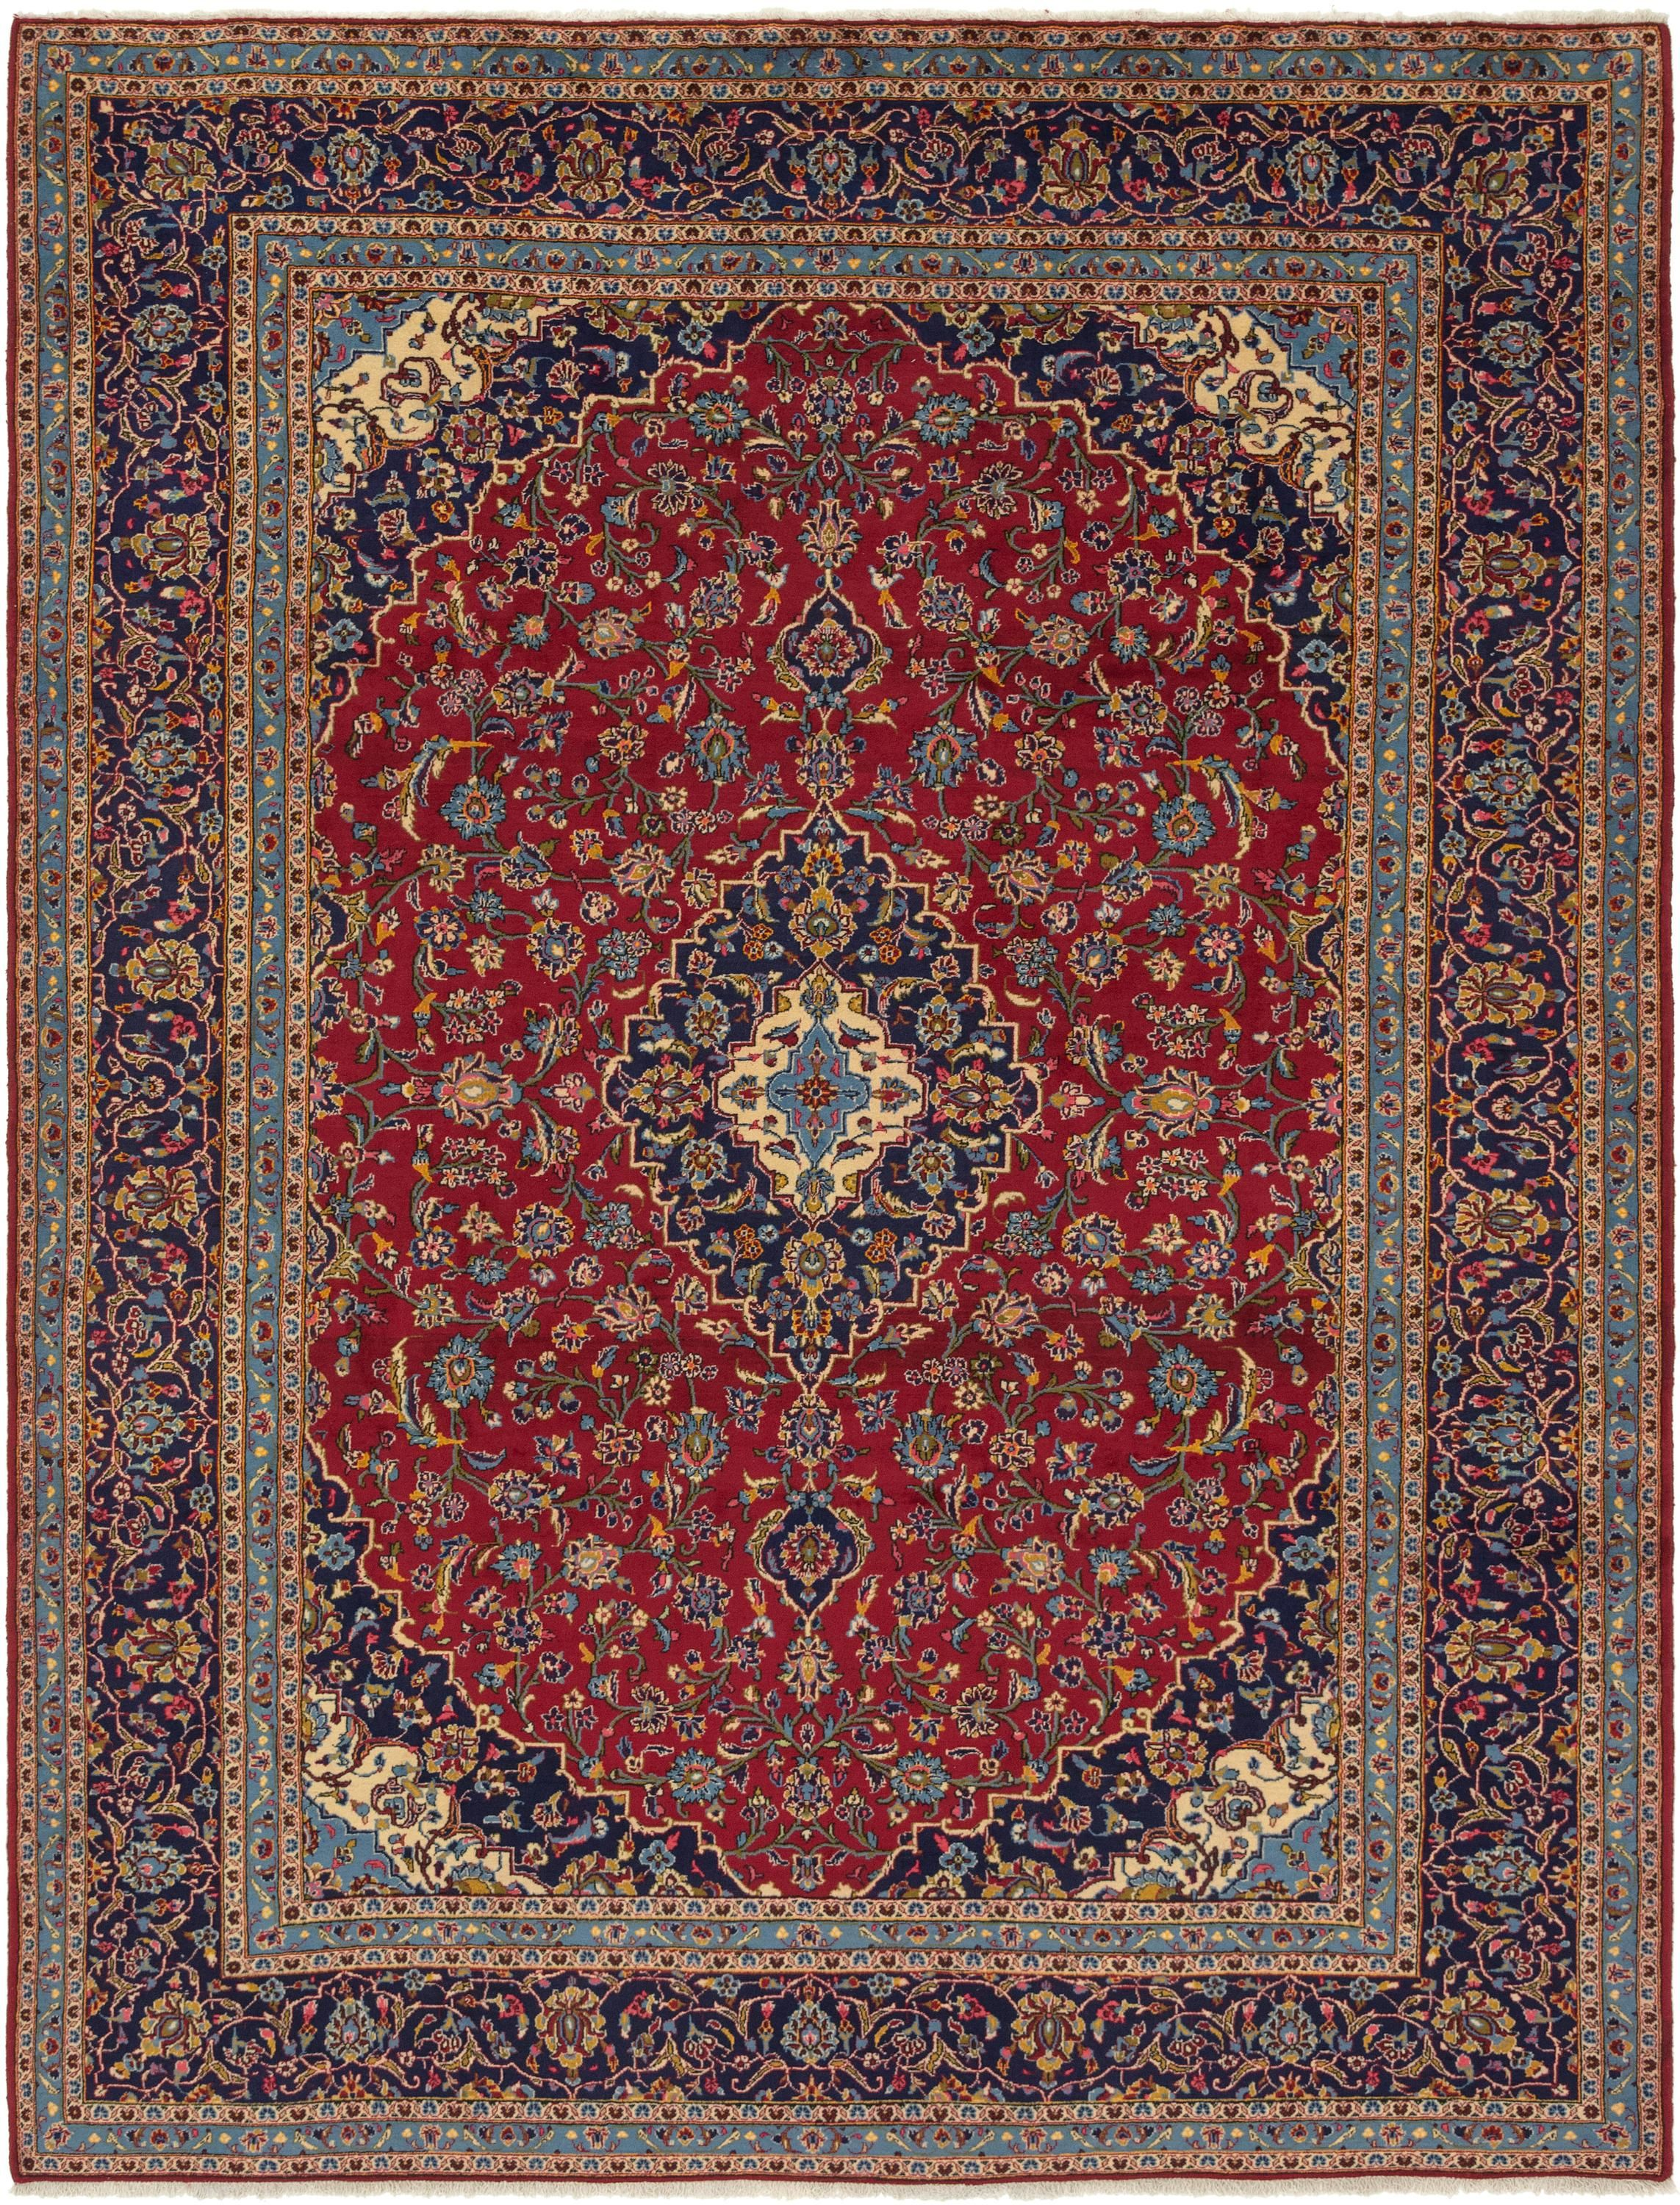 Red 9 10 X 13 Kashan Persian Rug Affiliate Red Rug Persian Kashan Sponsored Persian Rug Rugs Large Area Rugs